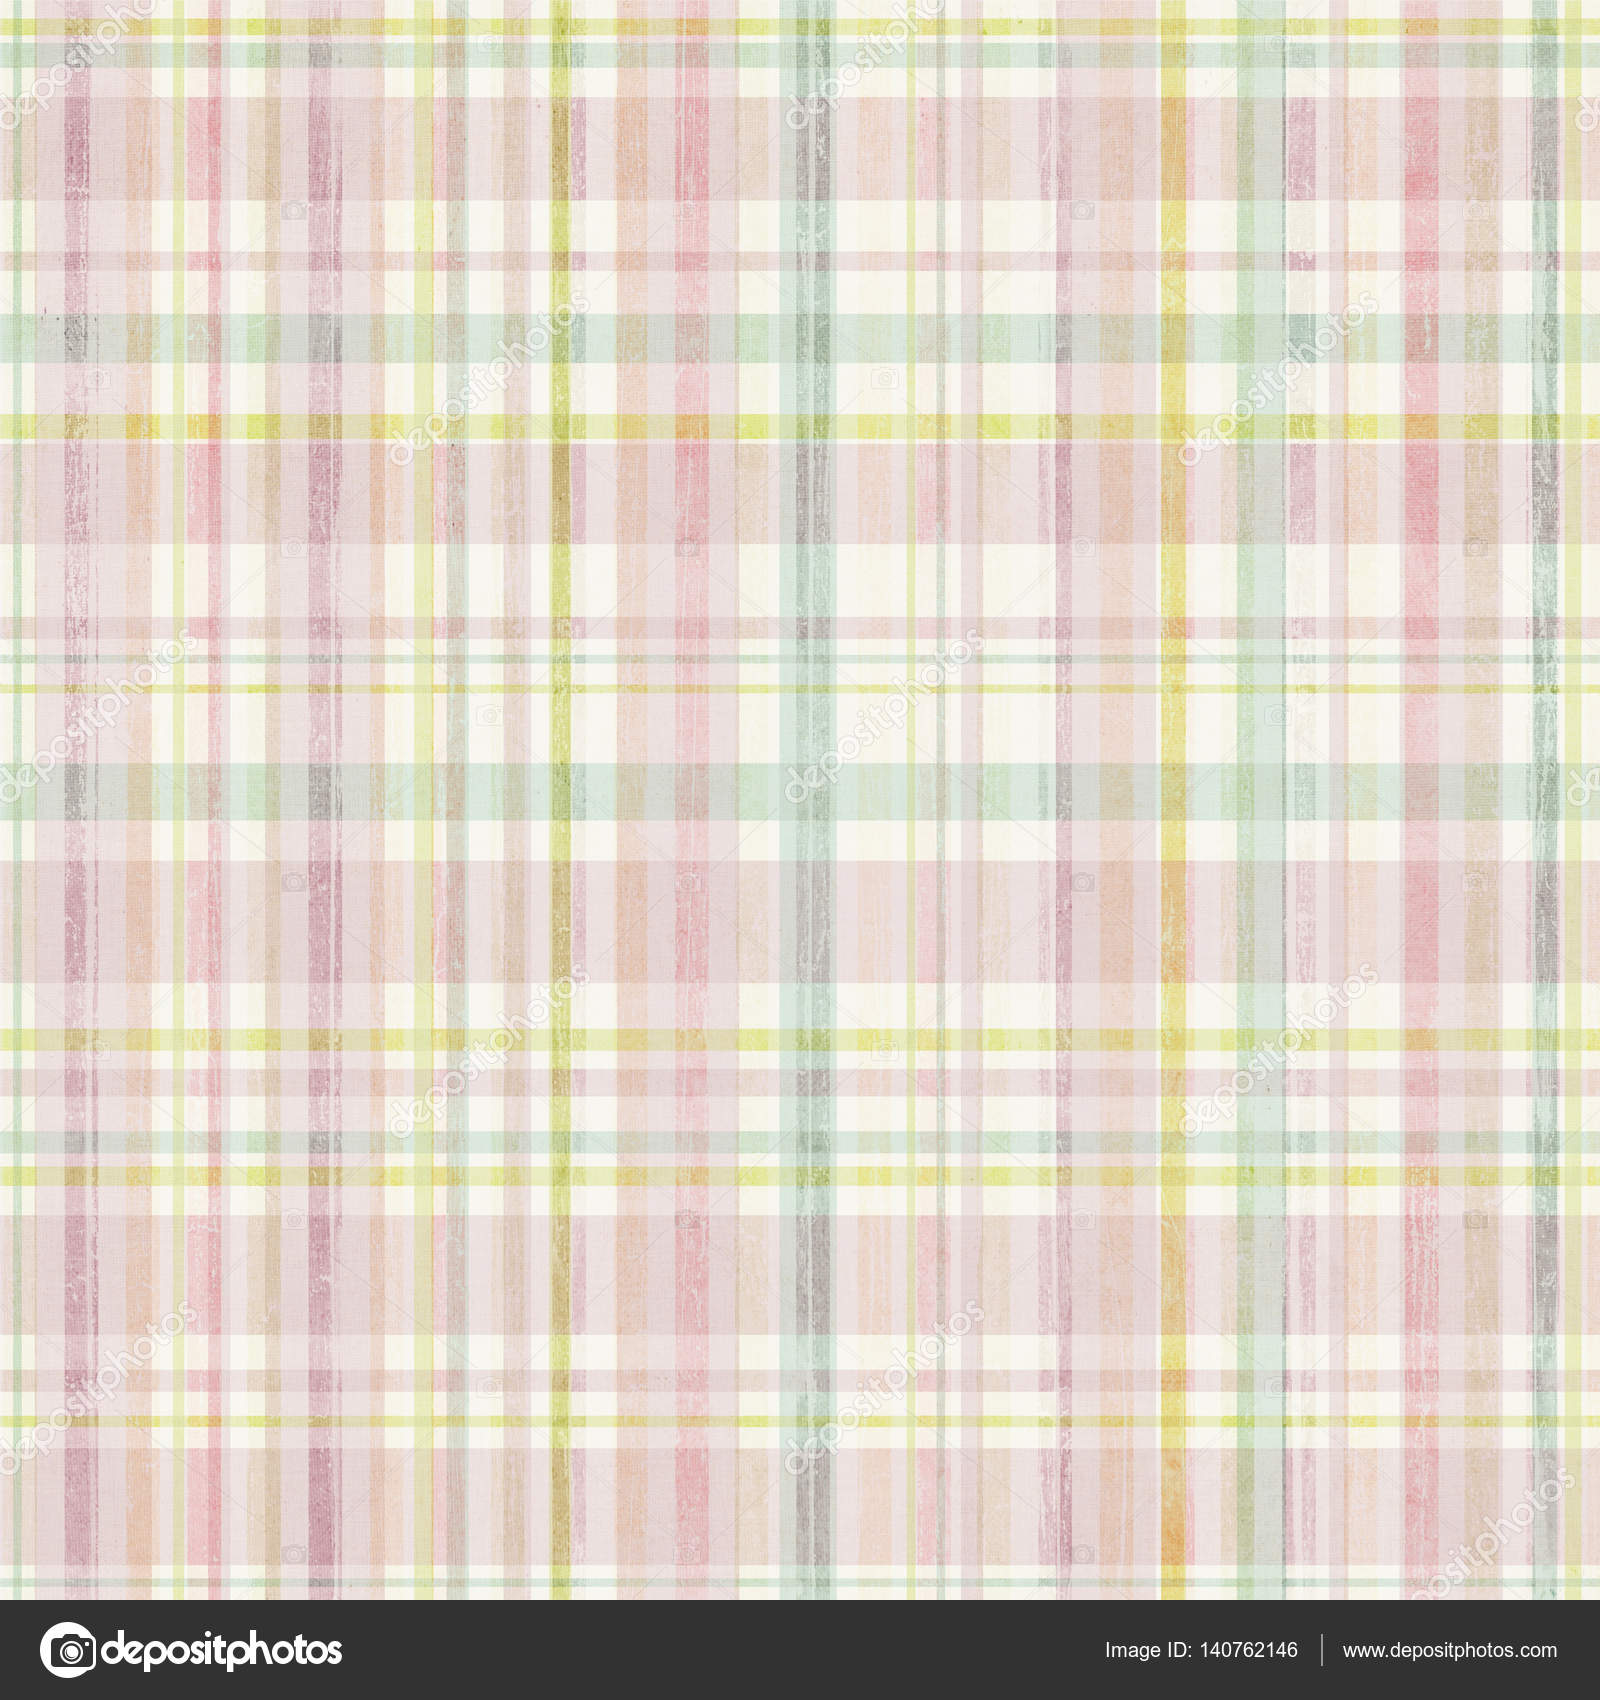 plaid pattern design simple plaid pattern stock photo o april 140762146. Black Bedroom Furniture Sets. Home Design Ideas